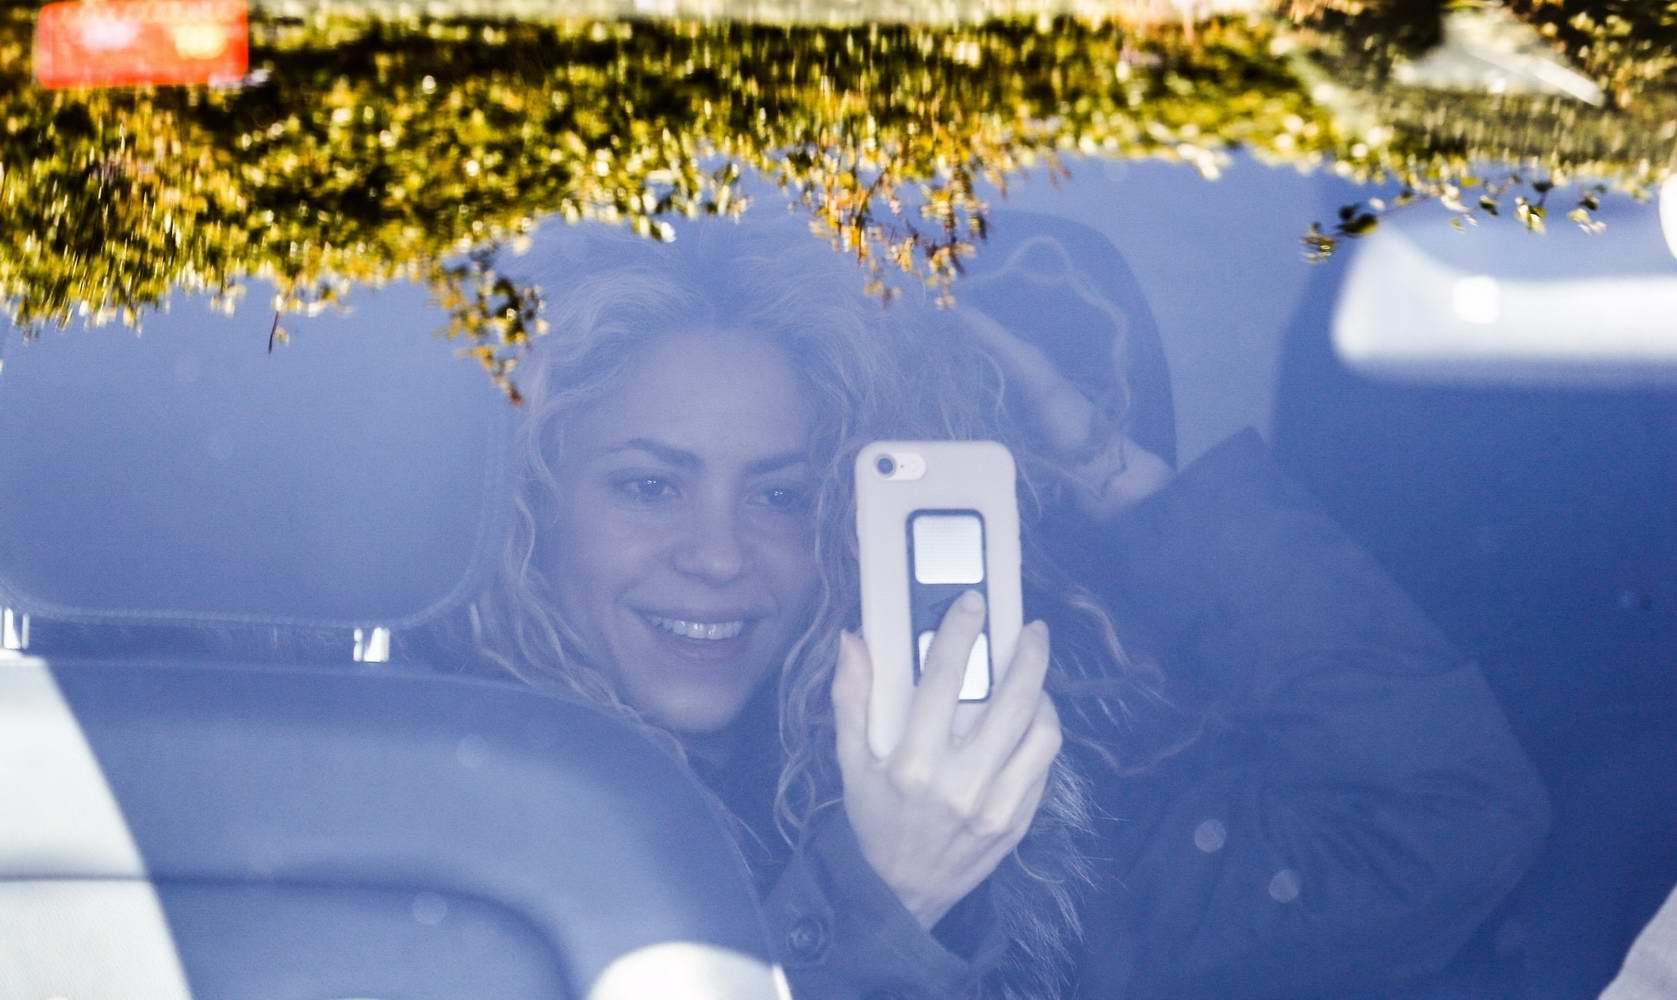 Shakira seen after returning home from a medical center in Barcelona, Spain